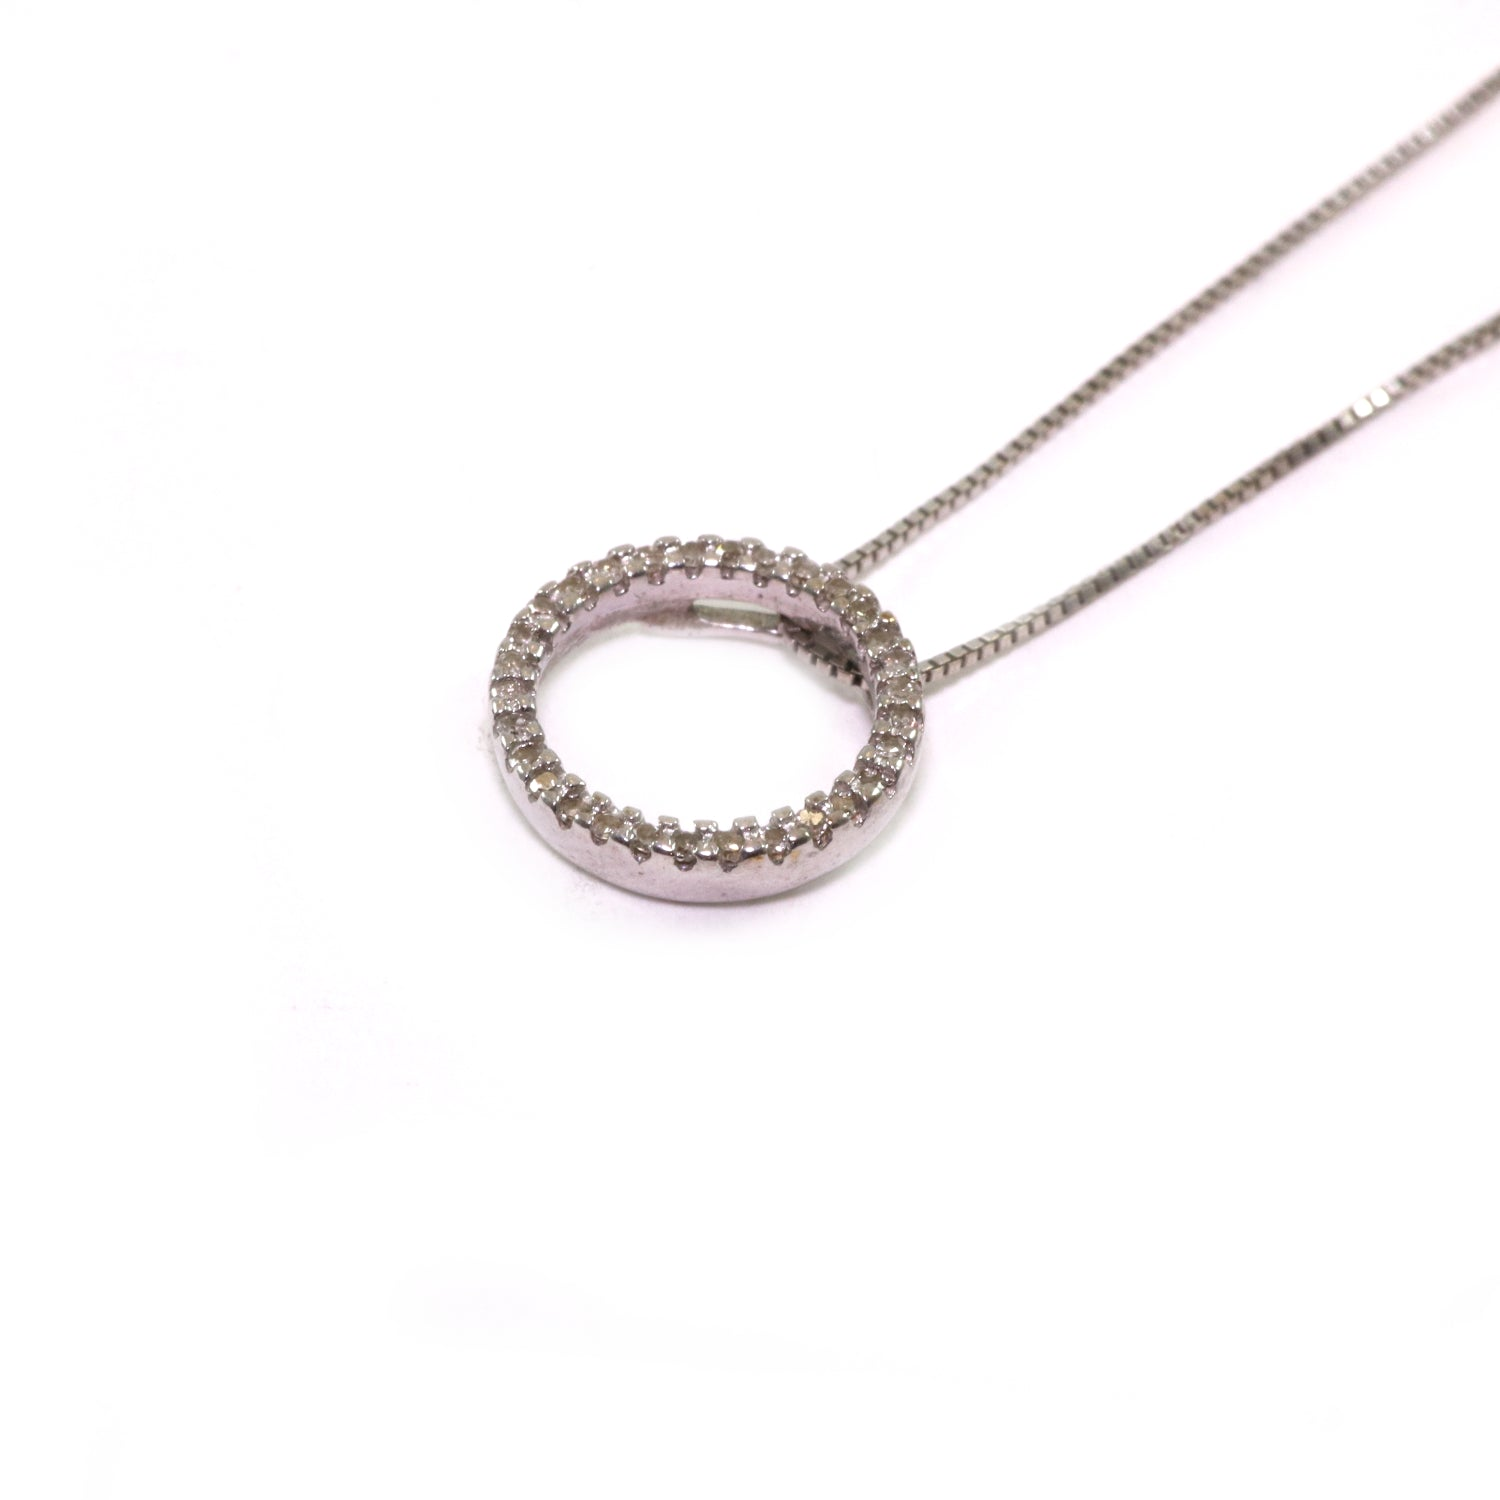 10k Gold Genuine Diamond Circle Pendant Necklace